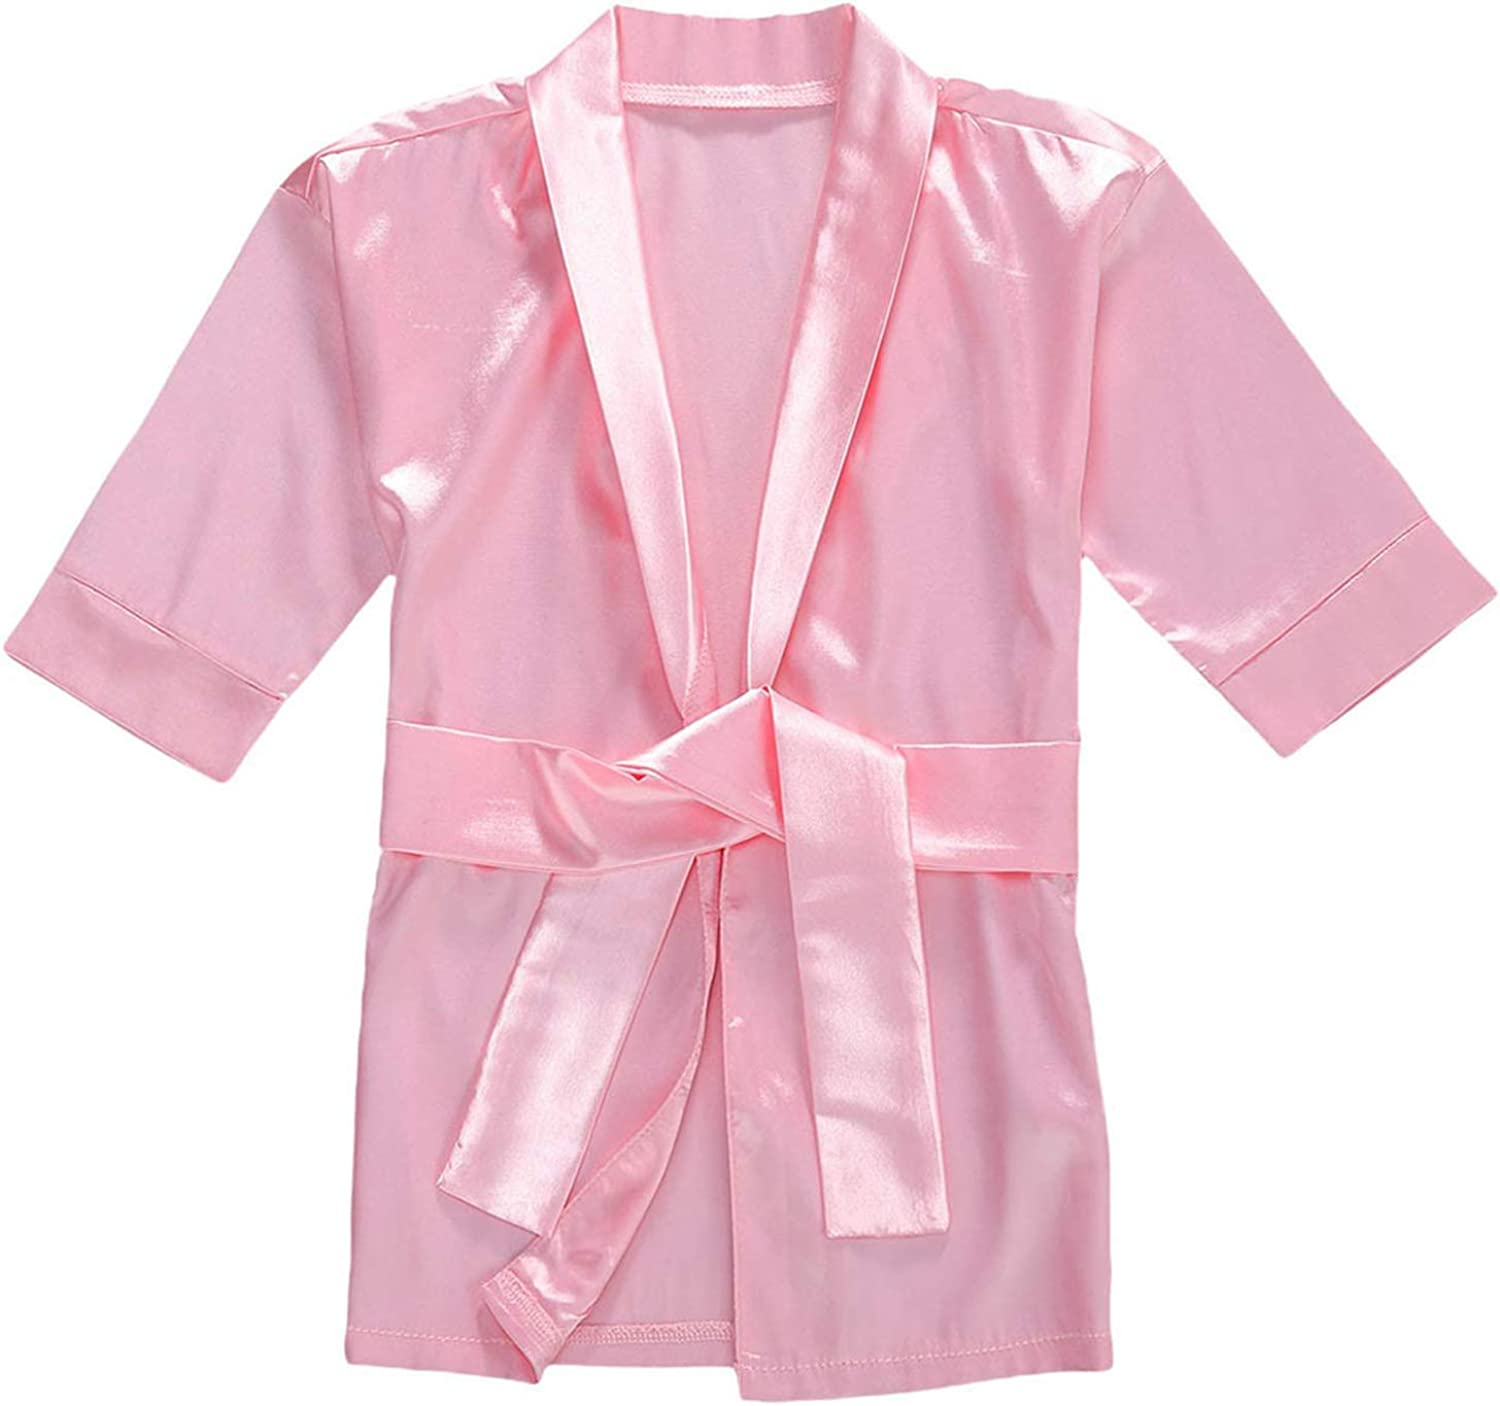 Infant Toddler Baby Girl Flannel Soft Bathrobes Hoodie Kimono Robe Clothes with Belt